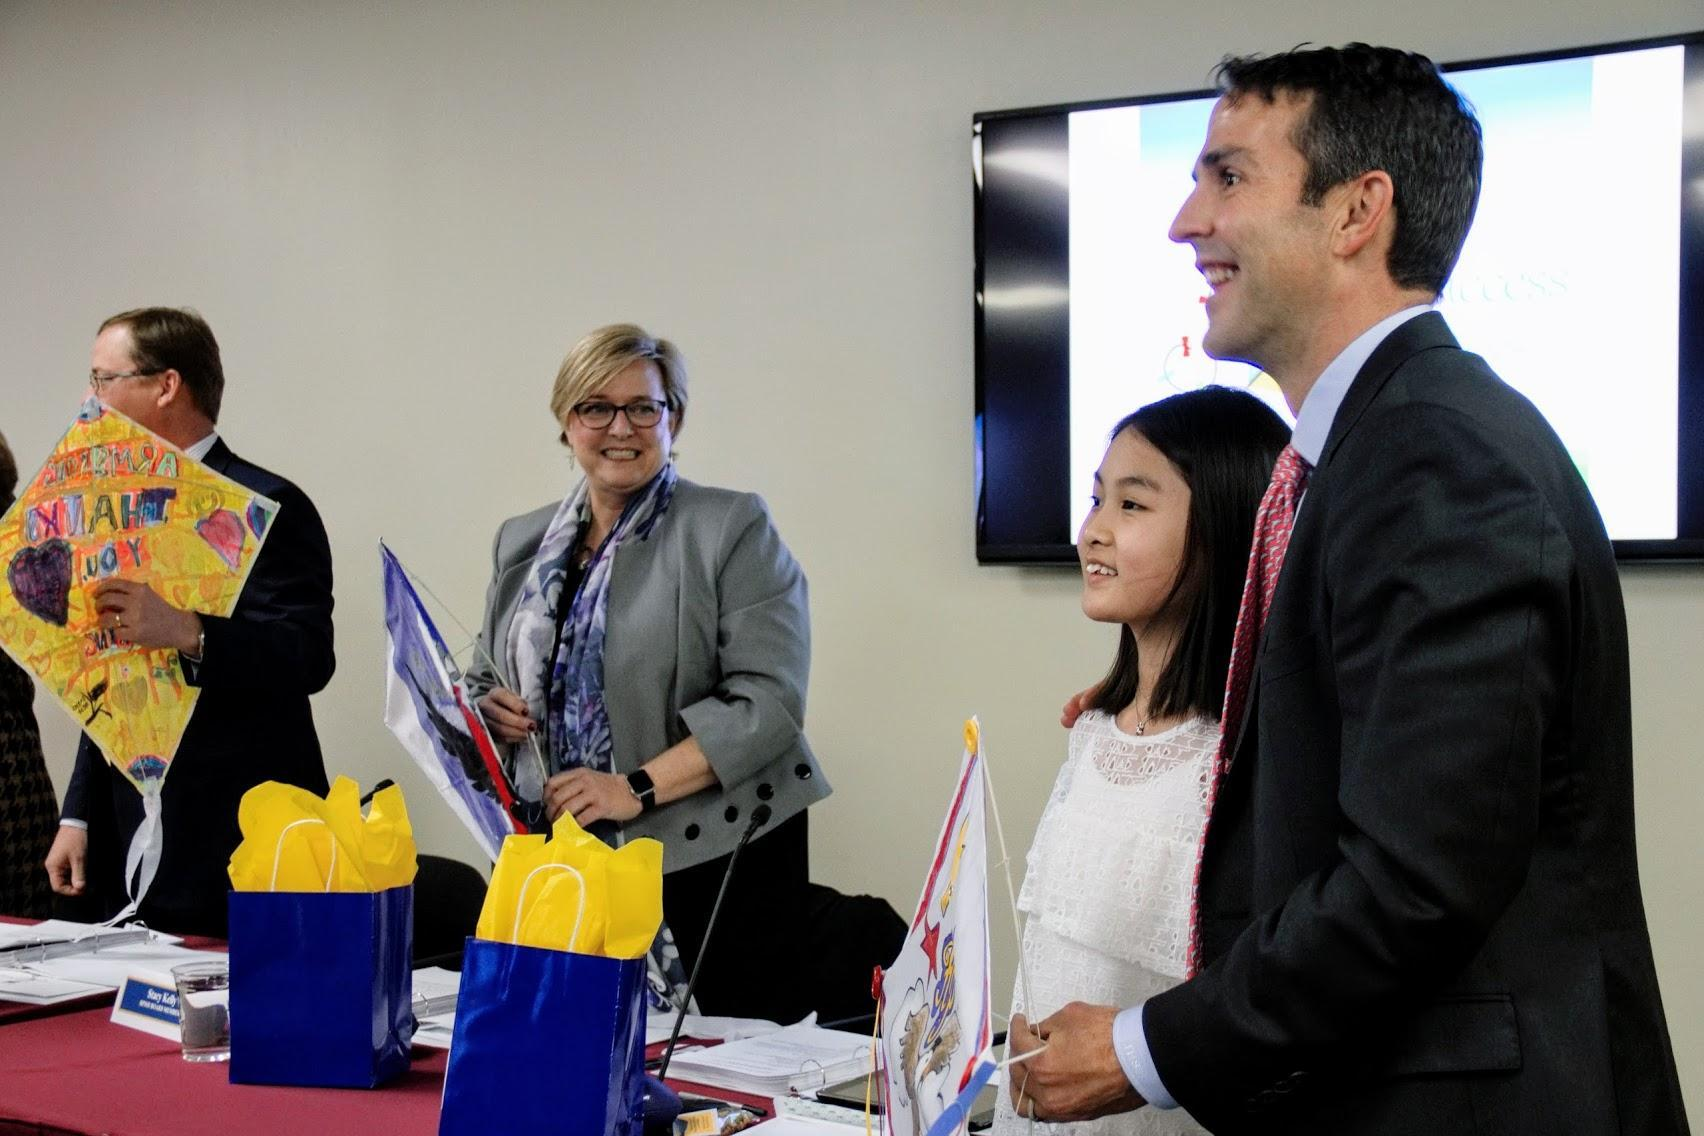 Board of Trustees accepting handmade kites of appreciation from students